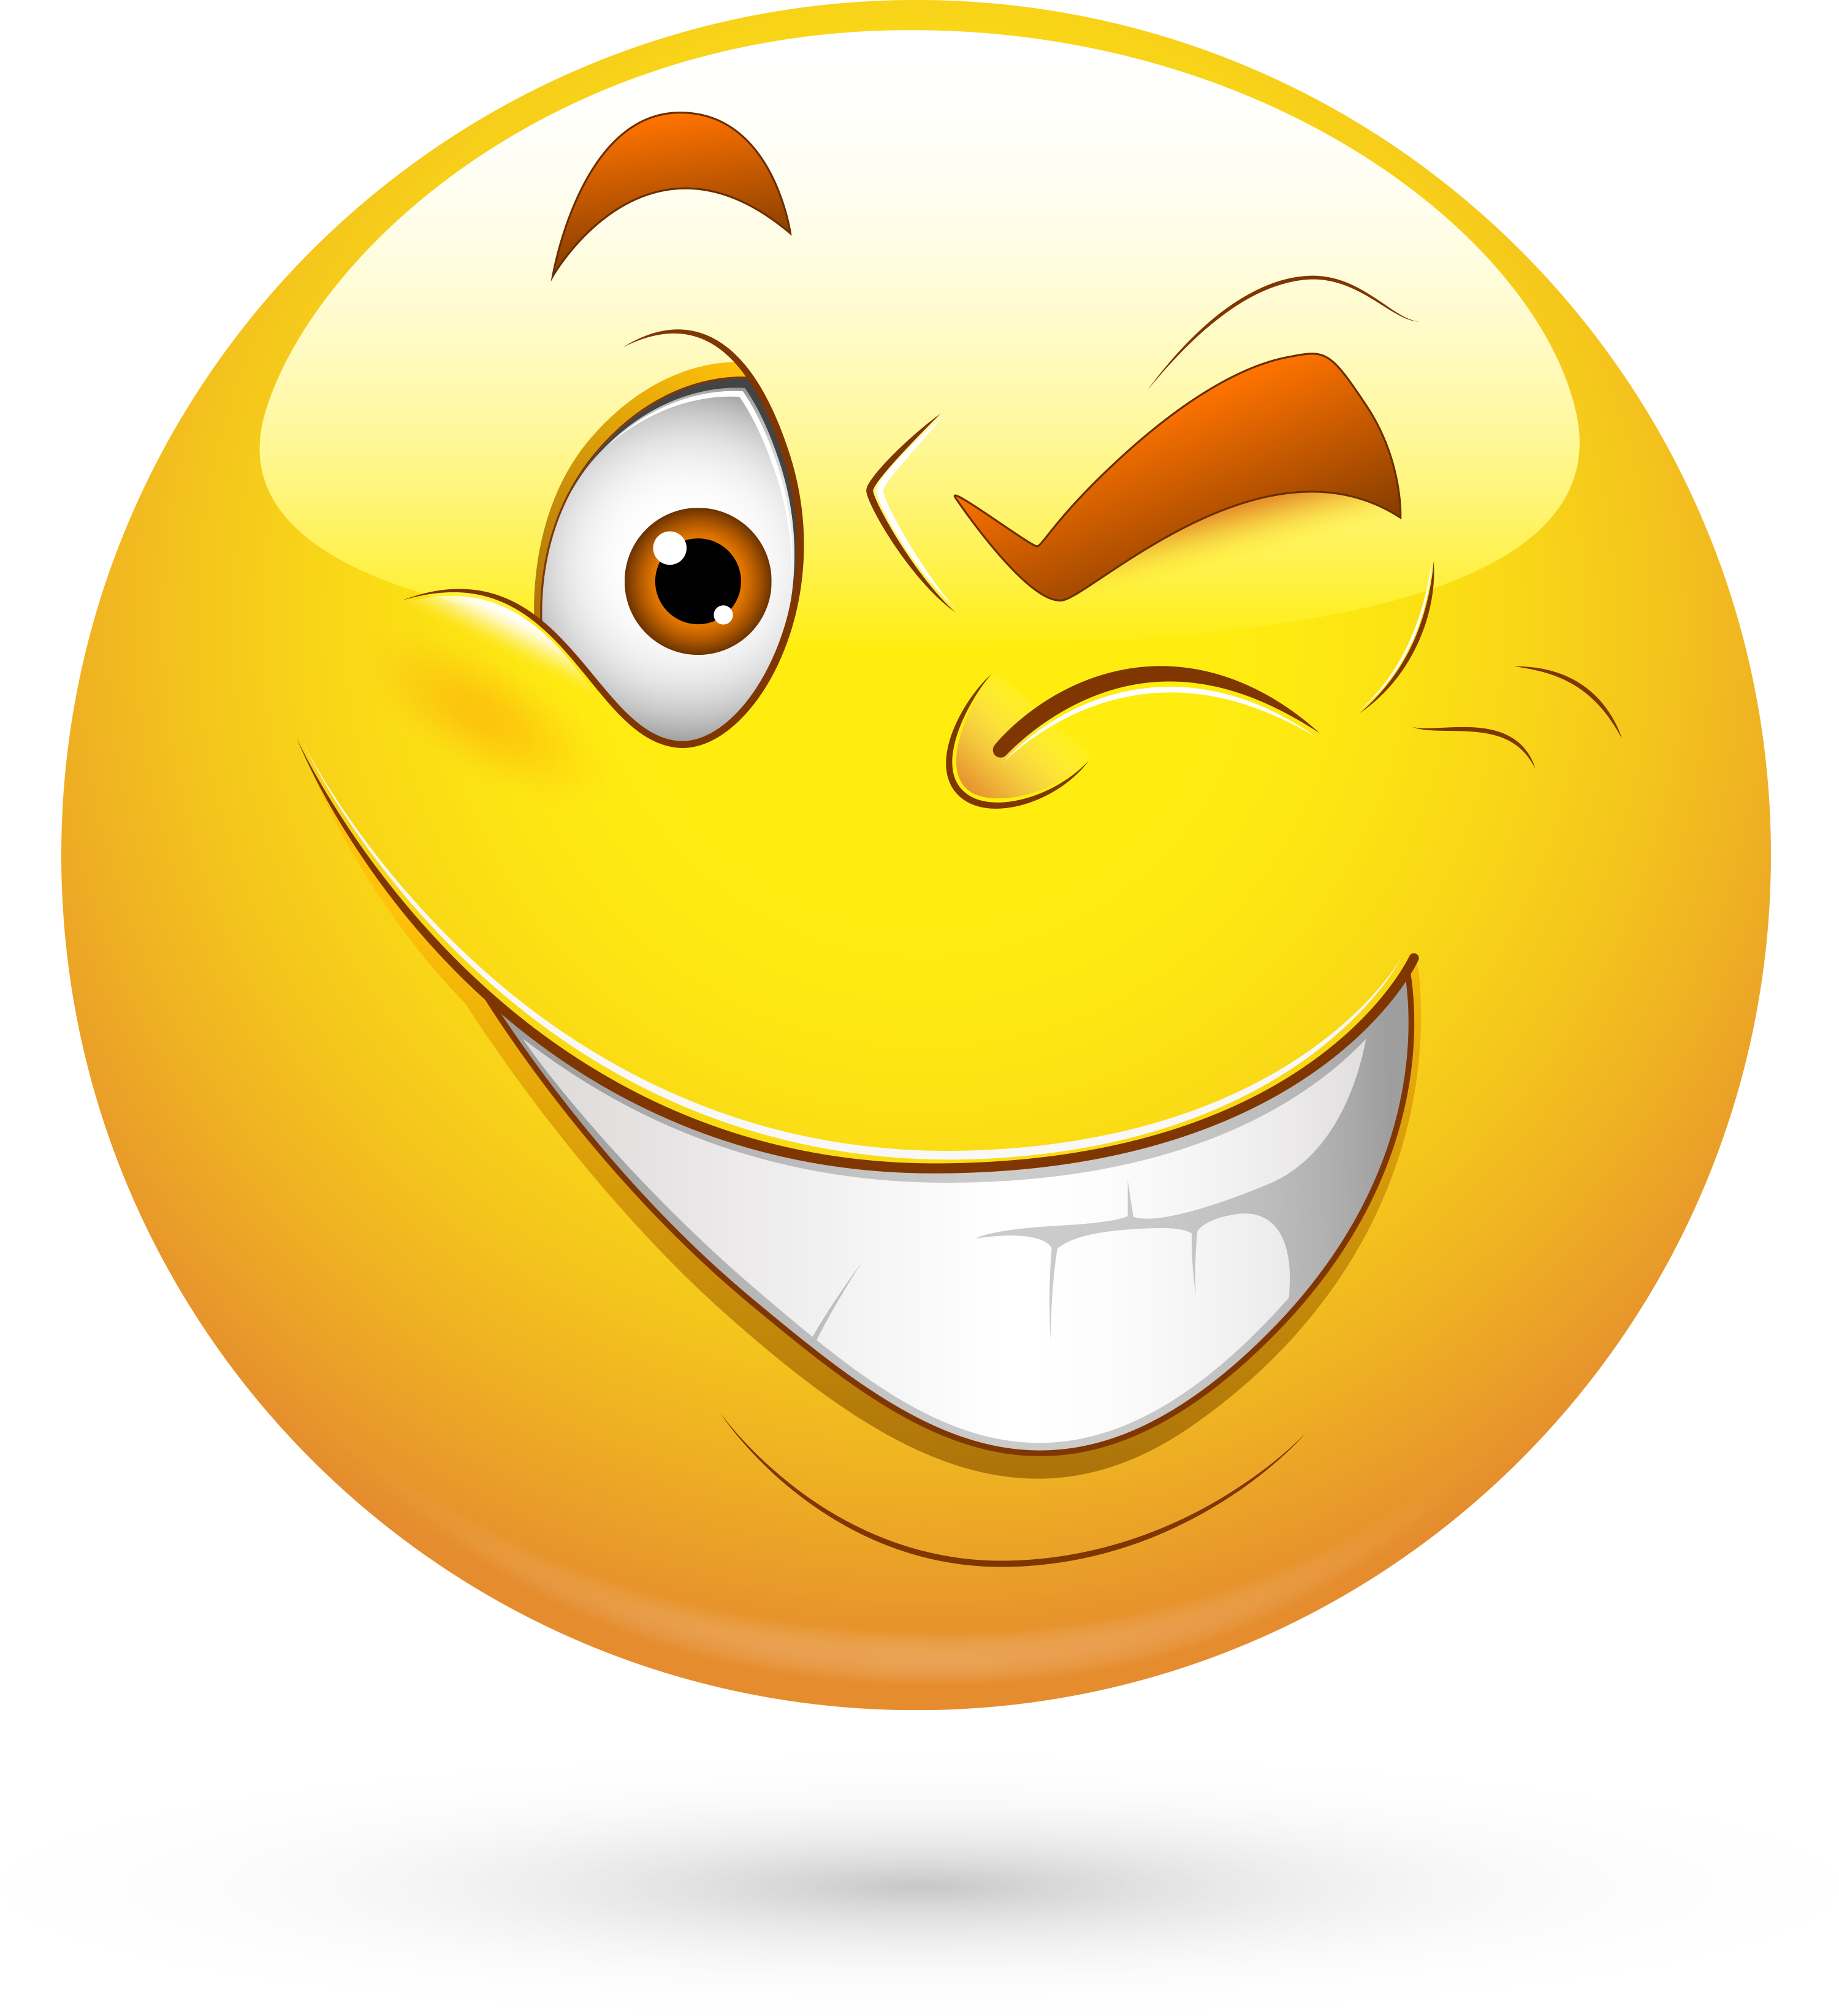 Pin By Irene Hansson On Smiley Smiley Smiley Face Smiley Emoji